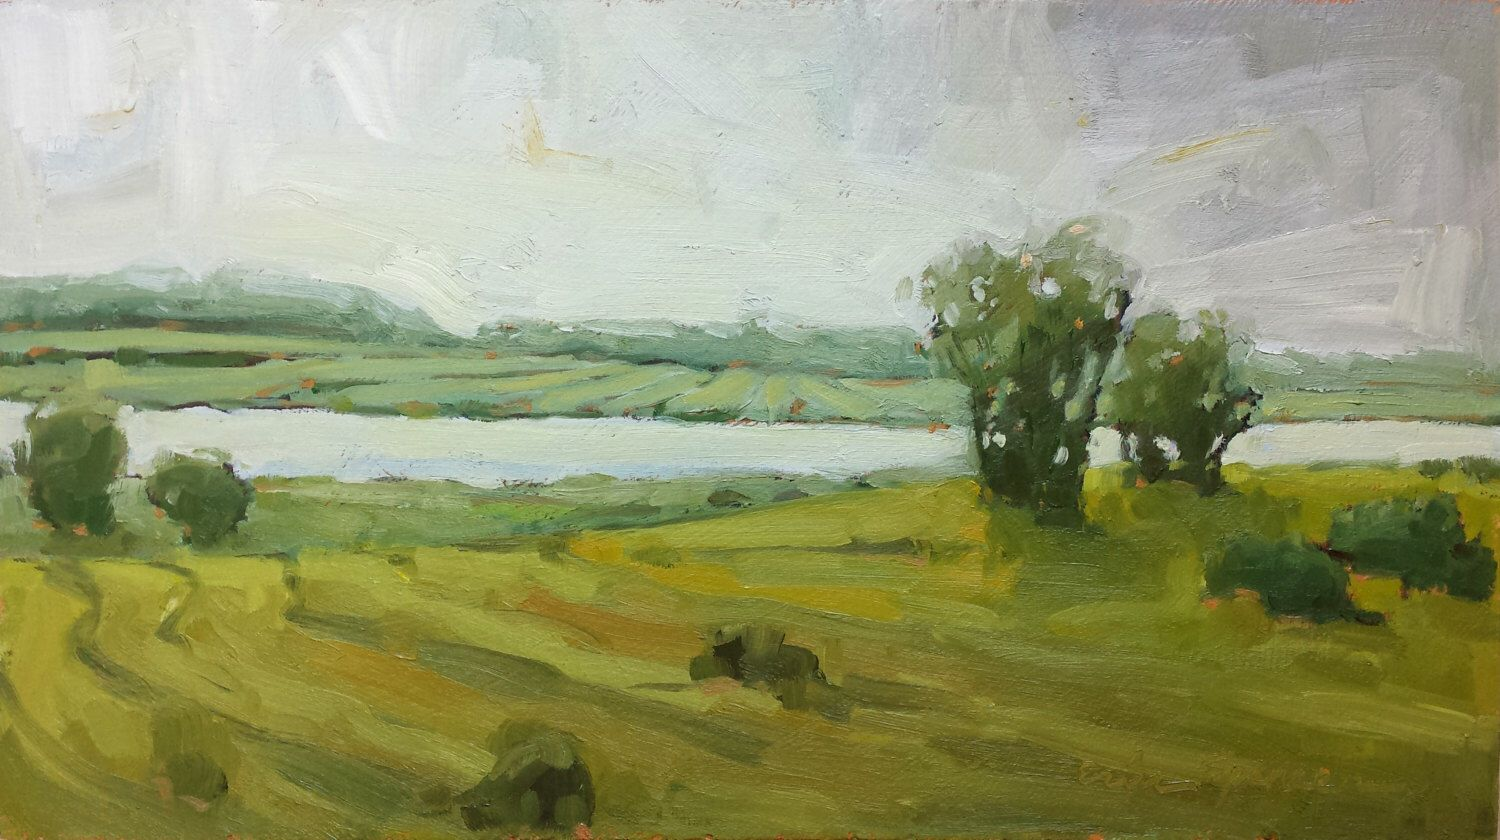 River View   Original Landscape Oil Painting   6.5 x 11.5 by erinspencer on Etsy https://www.etsy.com/listing/248388350/river-view-original-landscape-oil